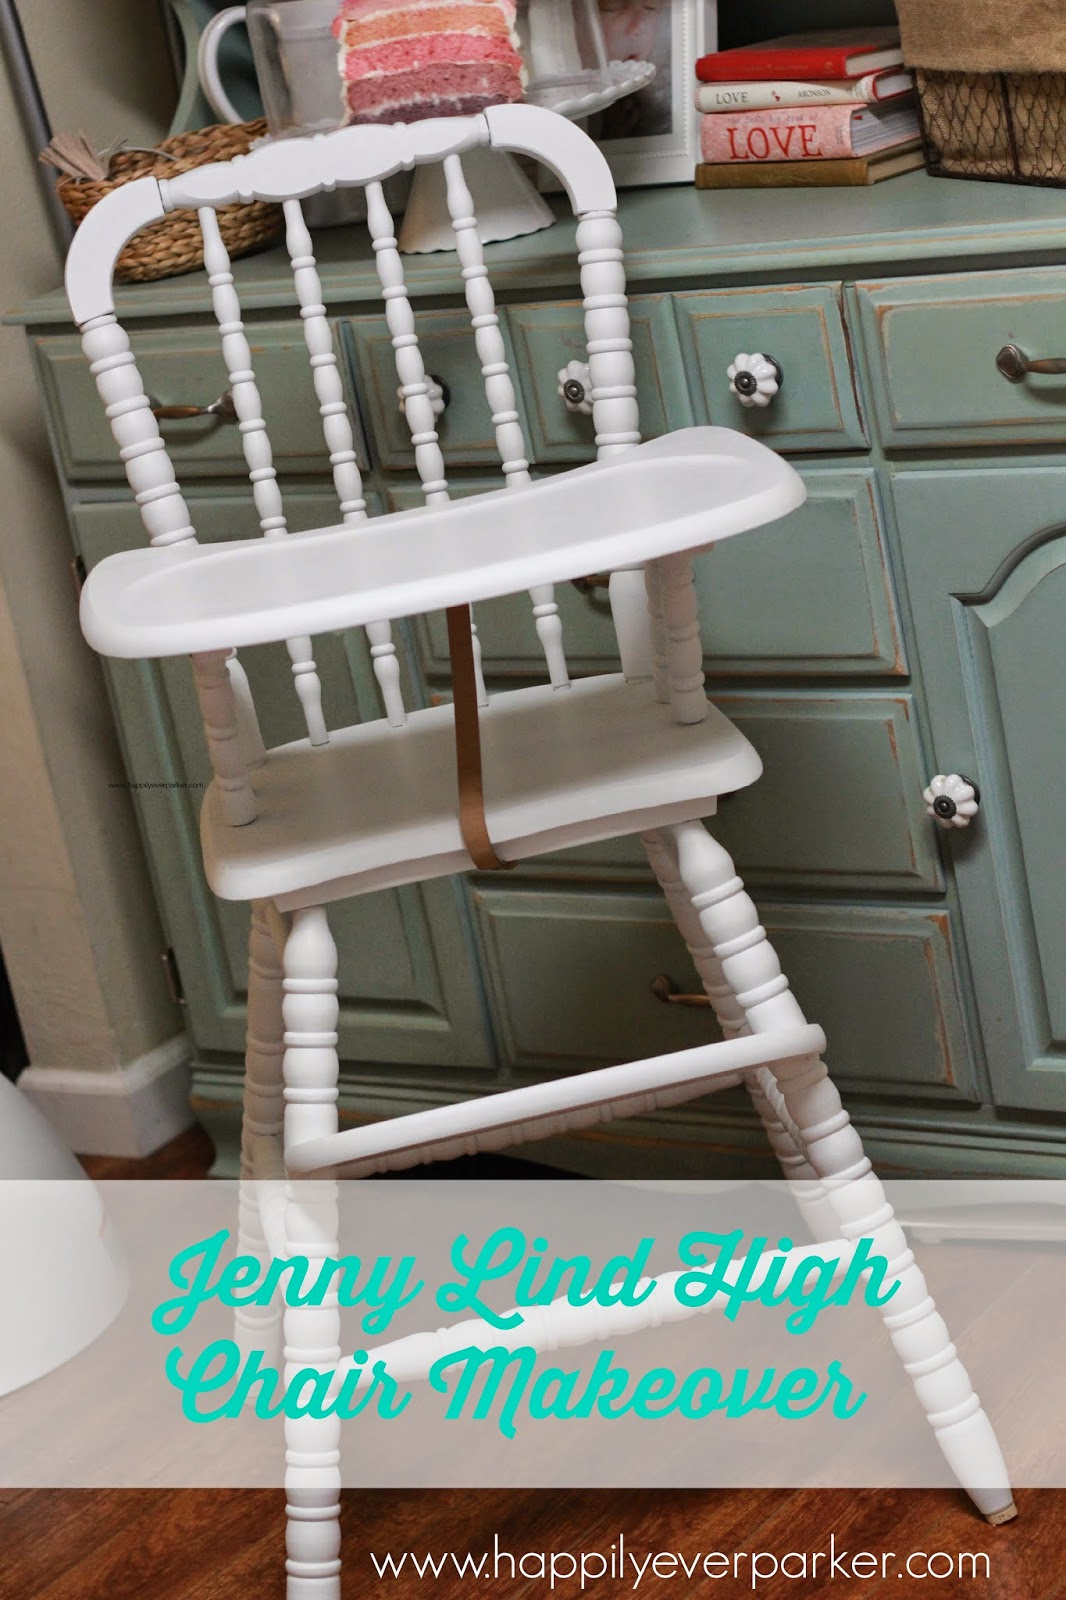 Happily ever parker 1980s jenny lind high chair makeover